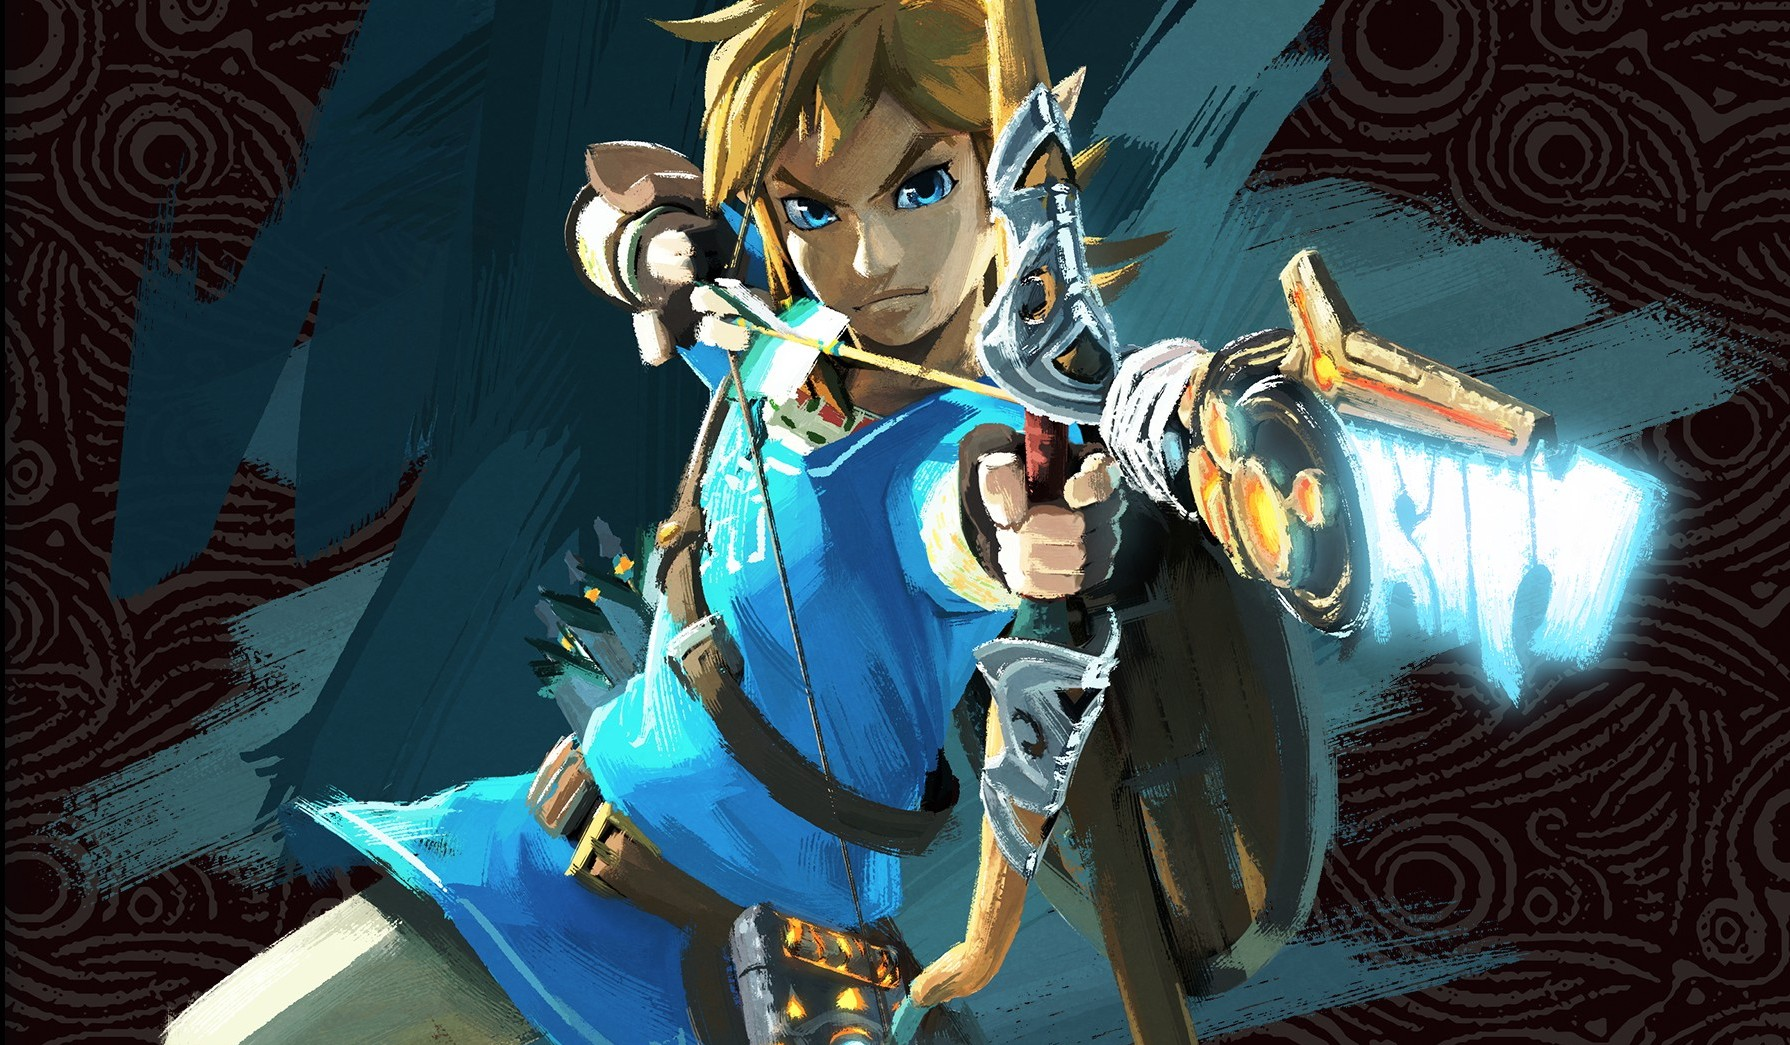 The Legend of Zelda: Breath of the Wild is now the best-selling Zelda game of all-time in the United States